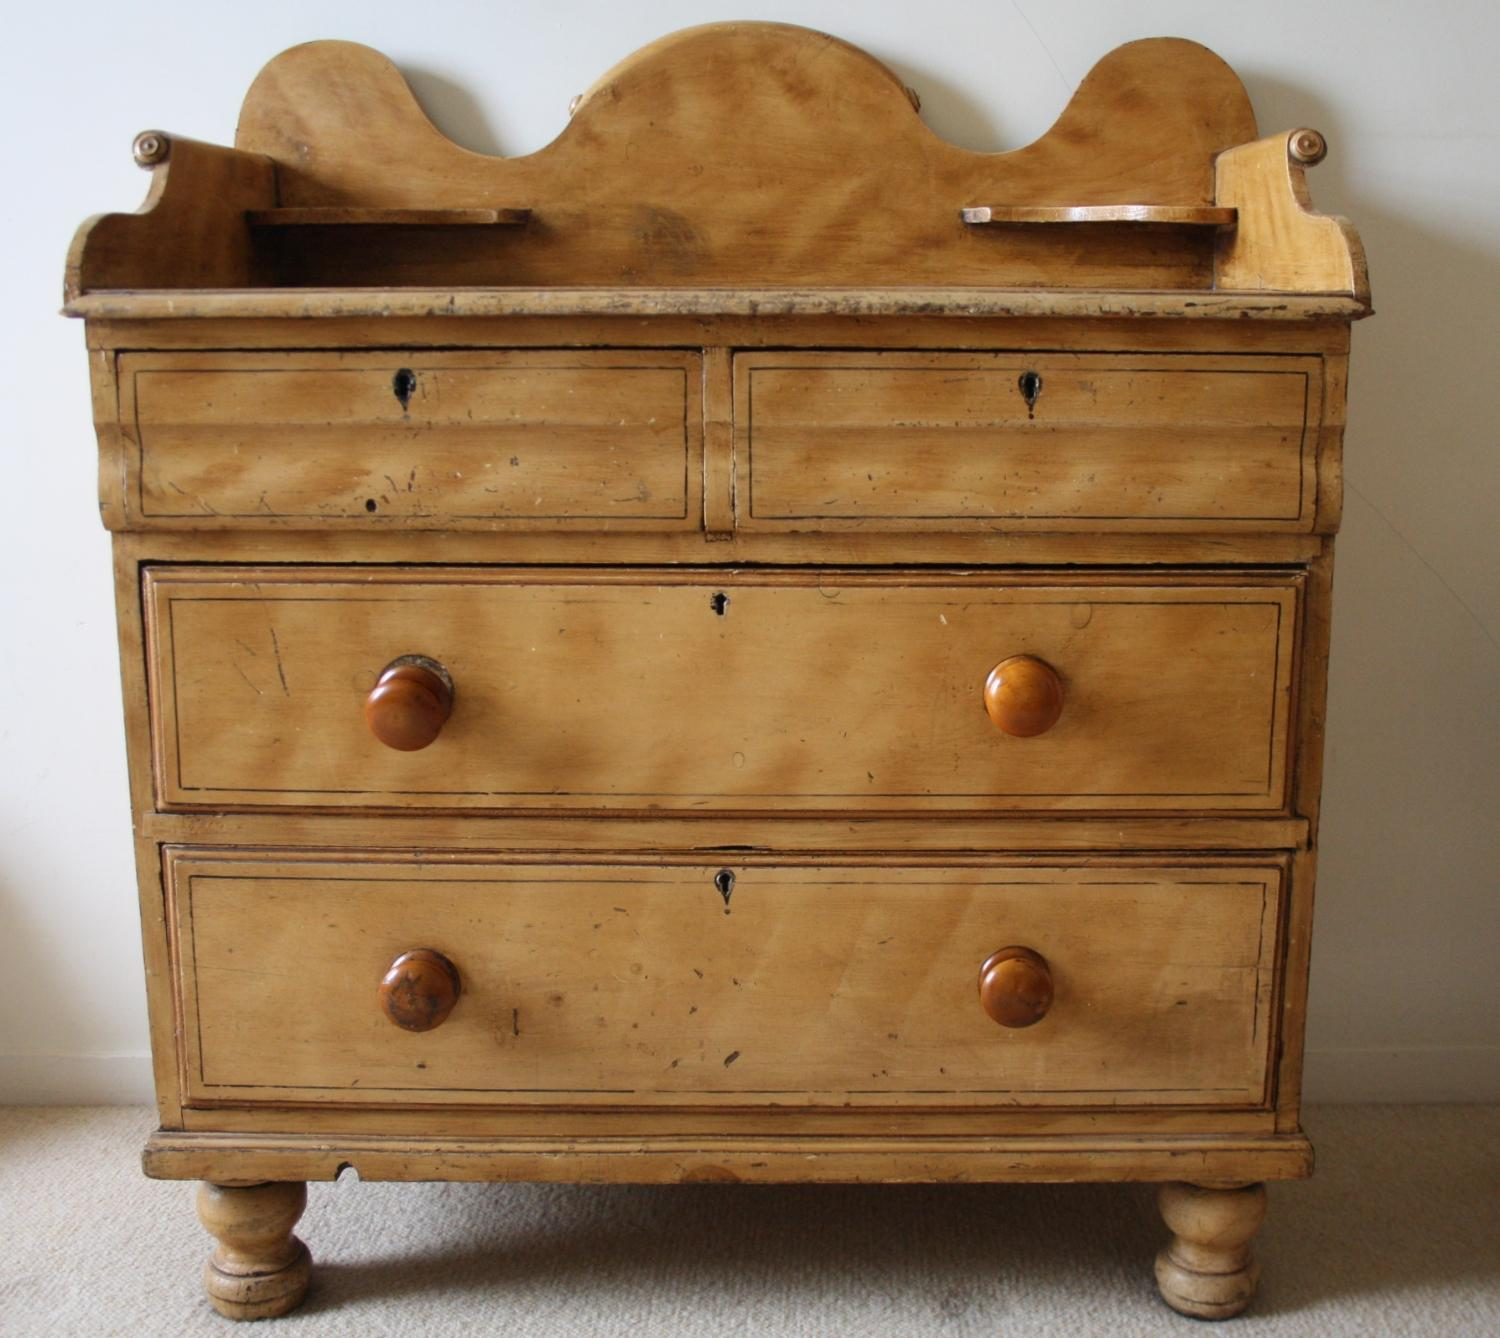 19th Century Pine Chest of Drawers